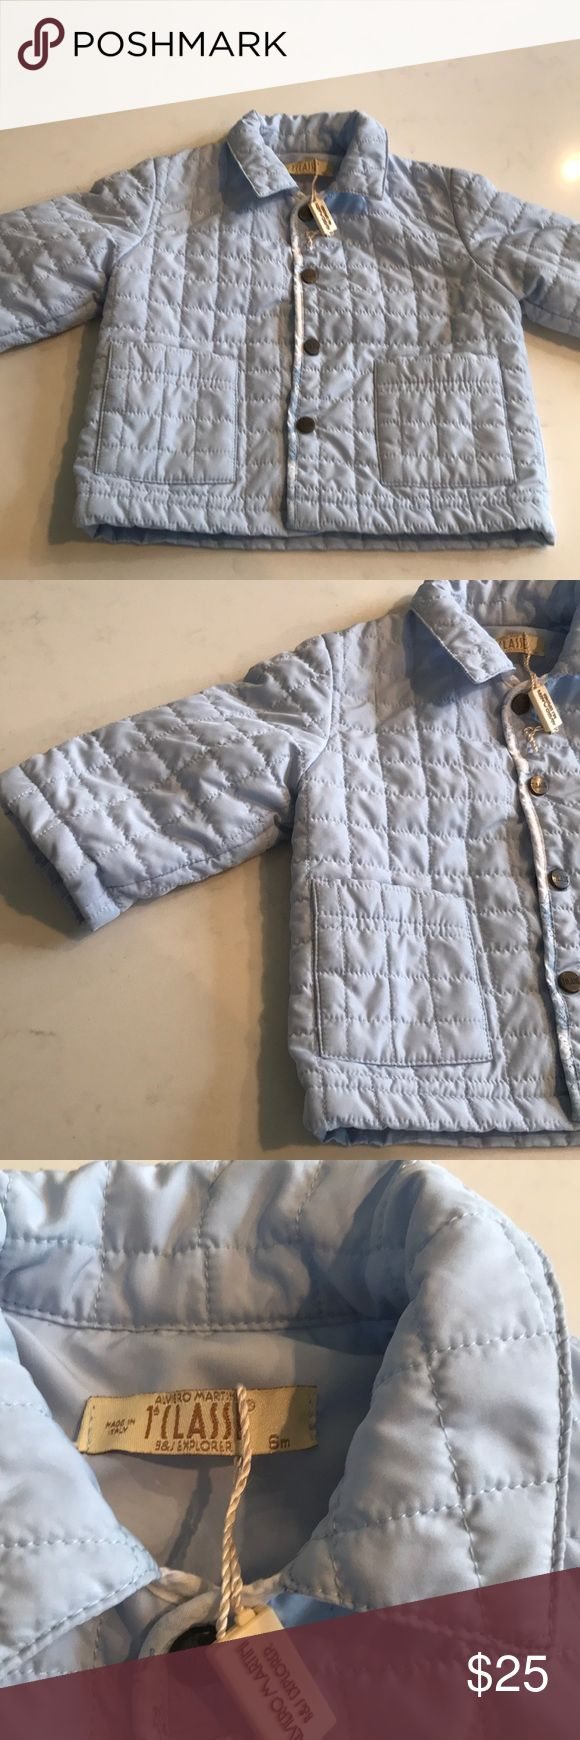 European designer boys lightweight spring jacket European designer, made in Italy, lightweight, boys,  spring puffer jacket. New. Light blue trimmed with white map design. Just precious. 1stCLASSE Jackets & Coats